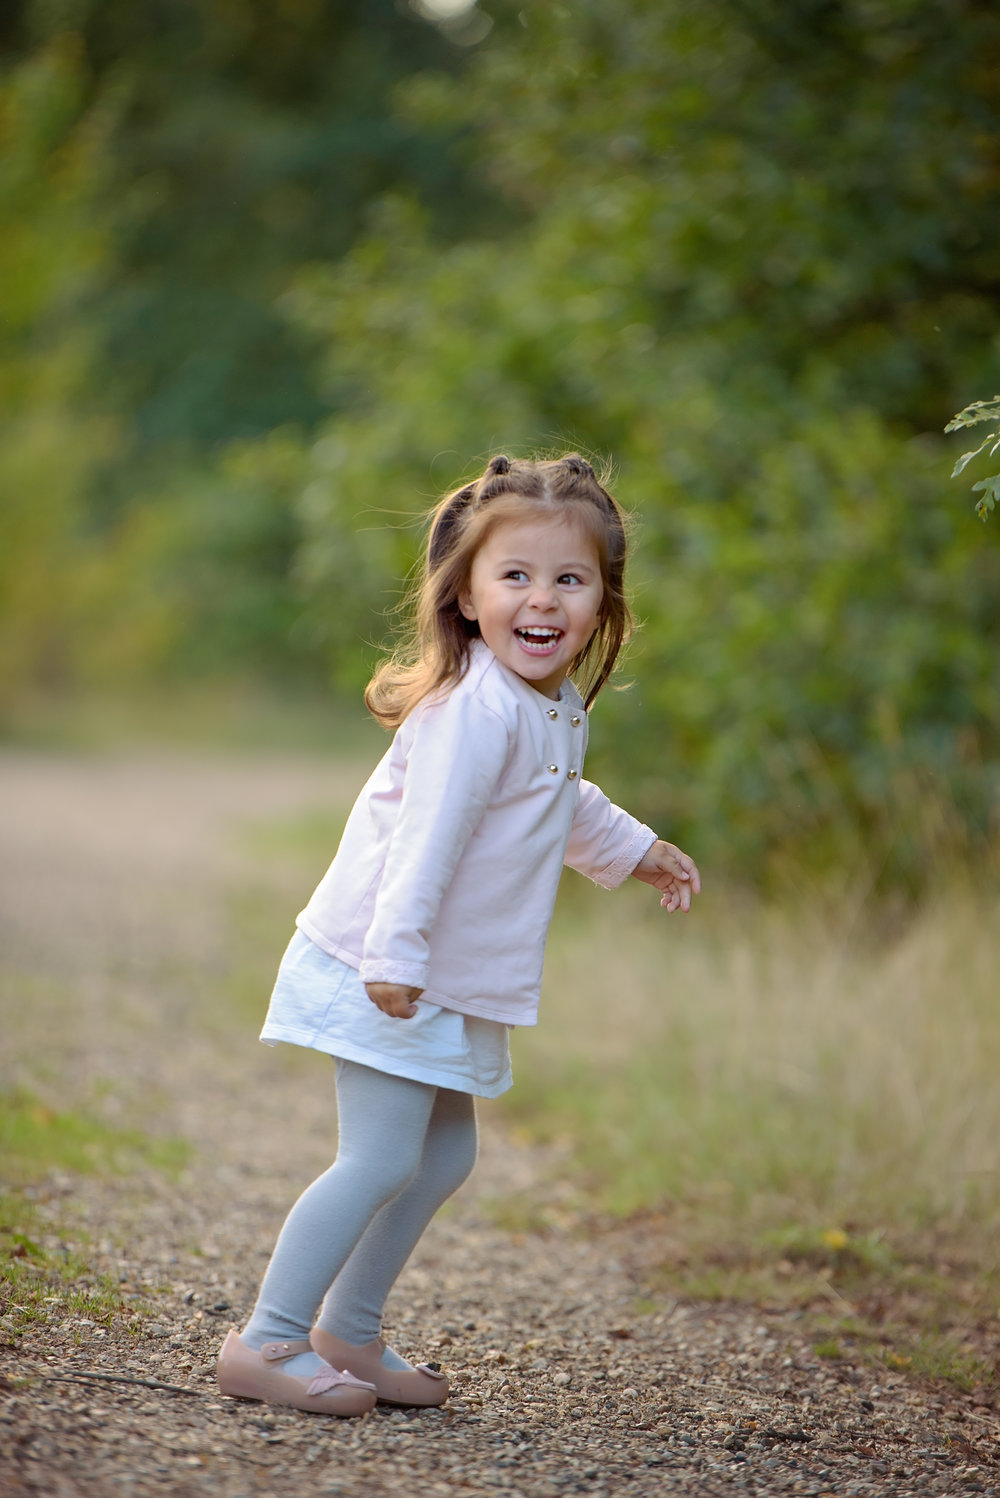 Portrait of a child laughing in Autumn colours